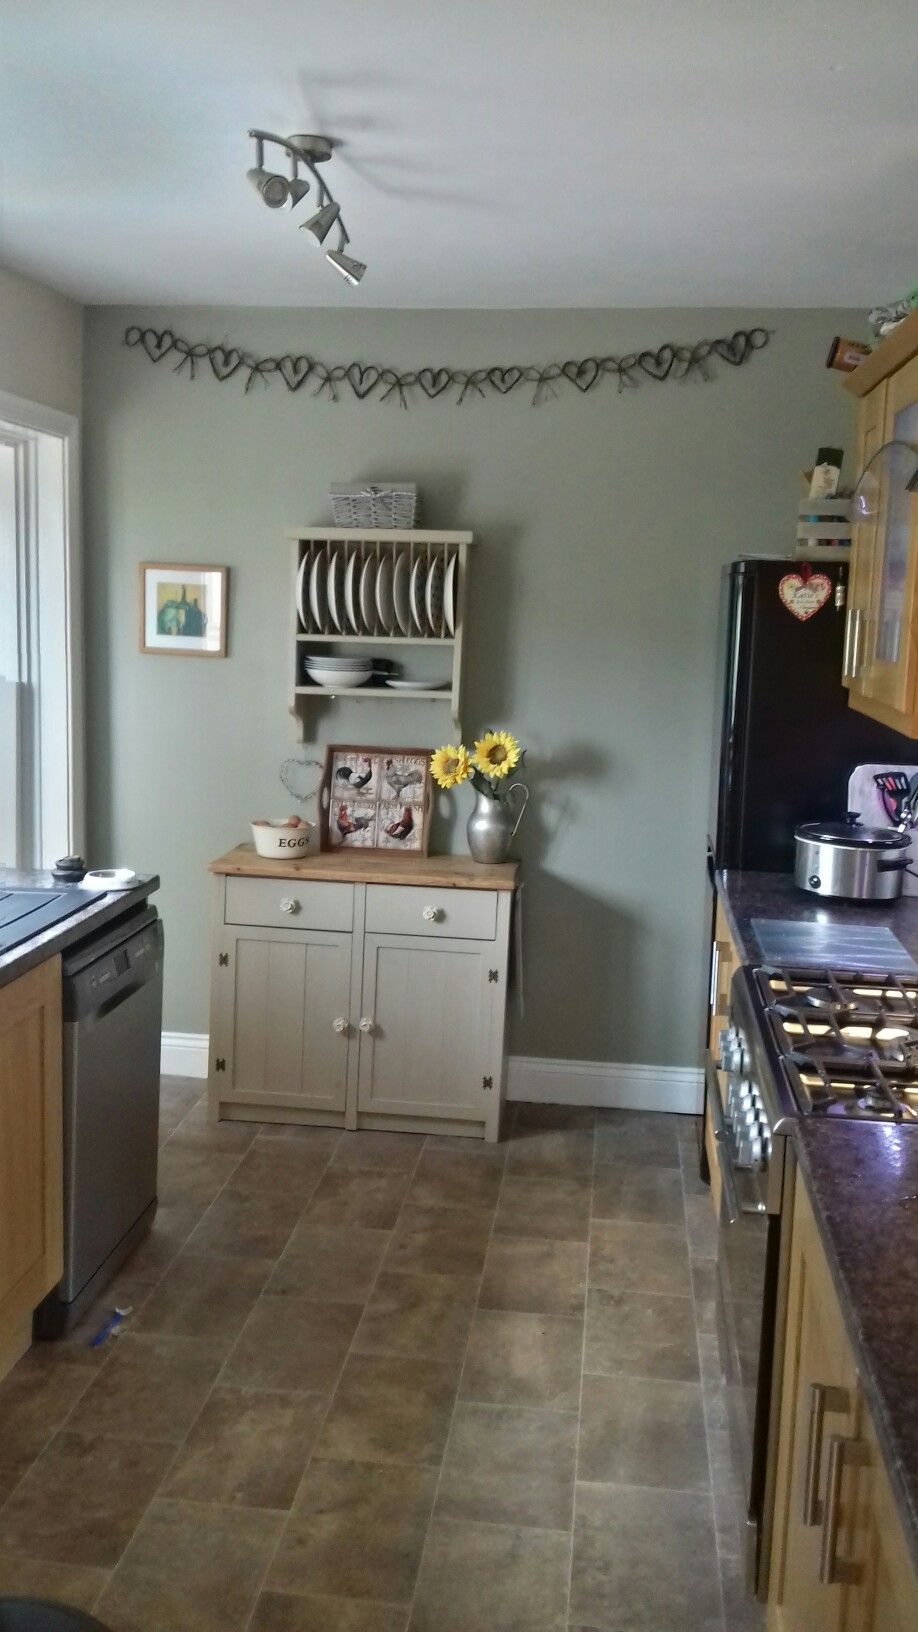 Dulux Overtly Olive Sideboard And Plate Rack Annie Sloan